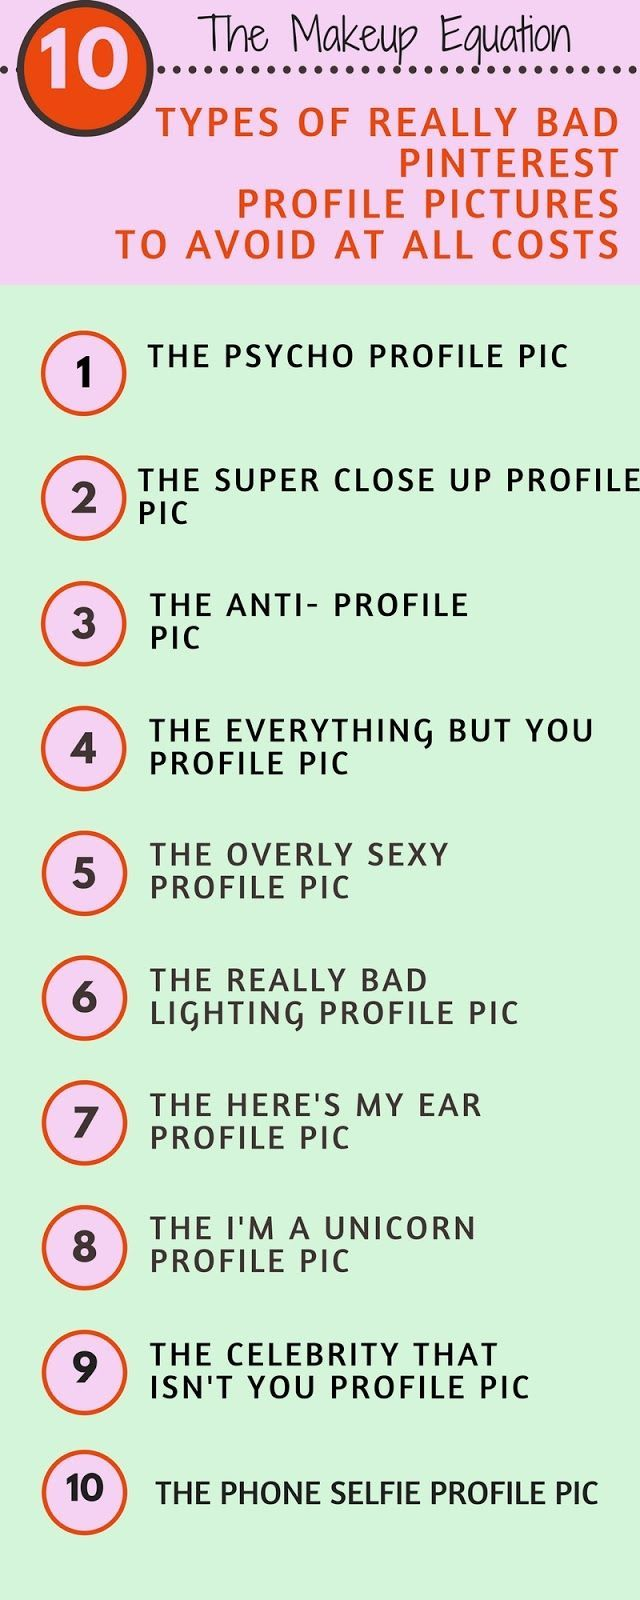 10 Types of Really Bad Pinterest Profile Pictures To Avoid